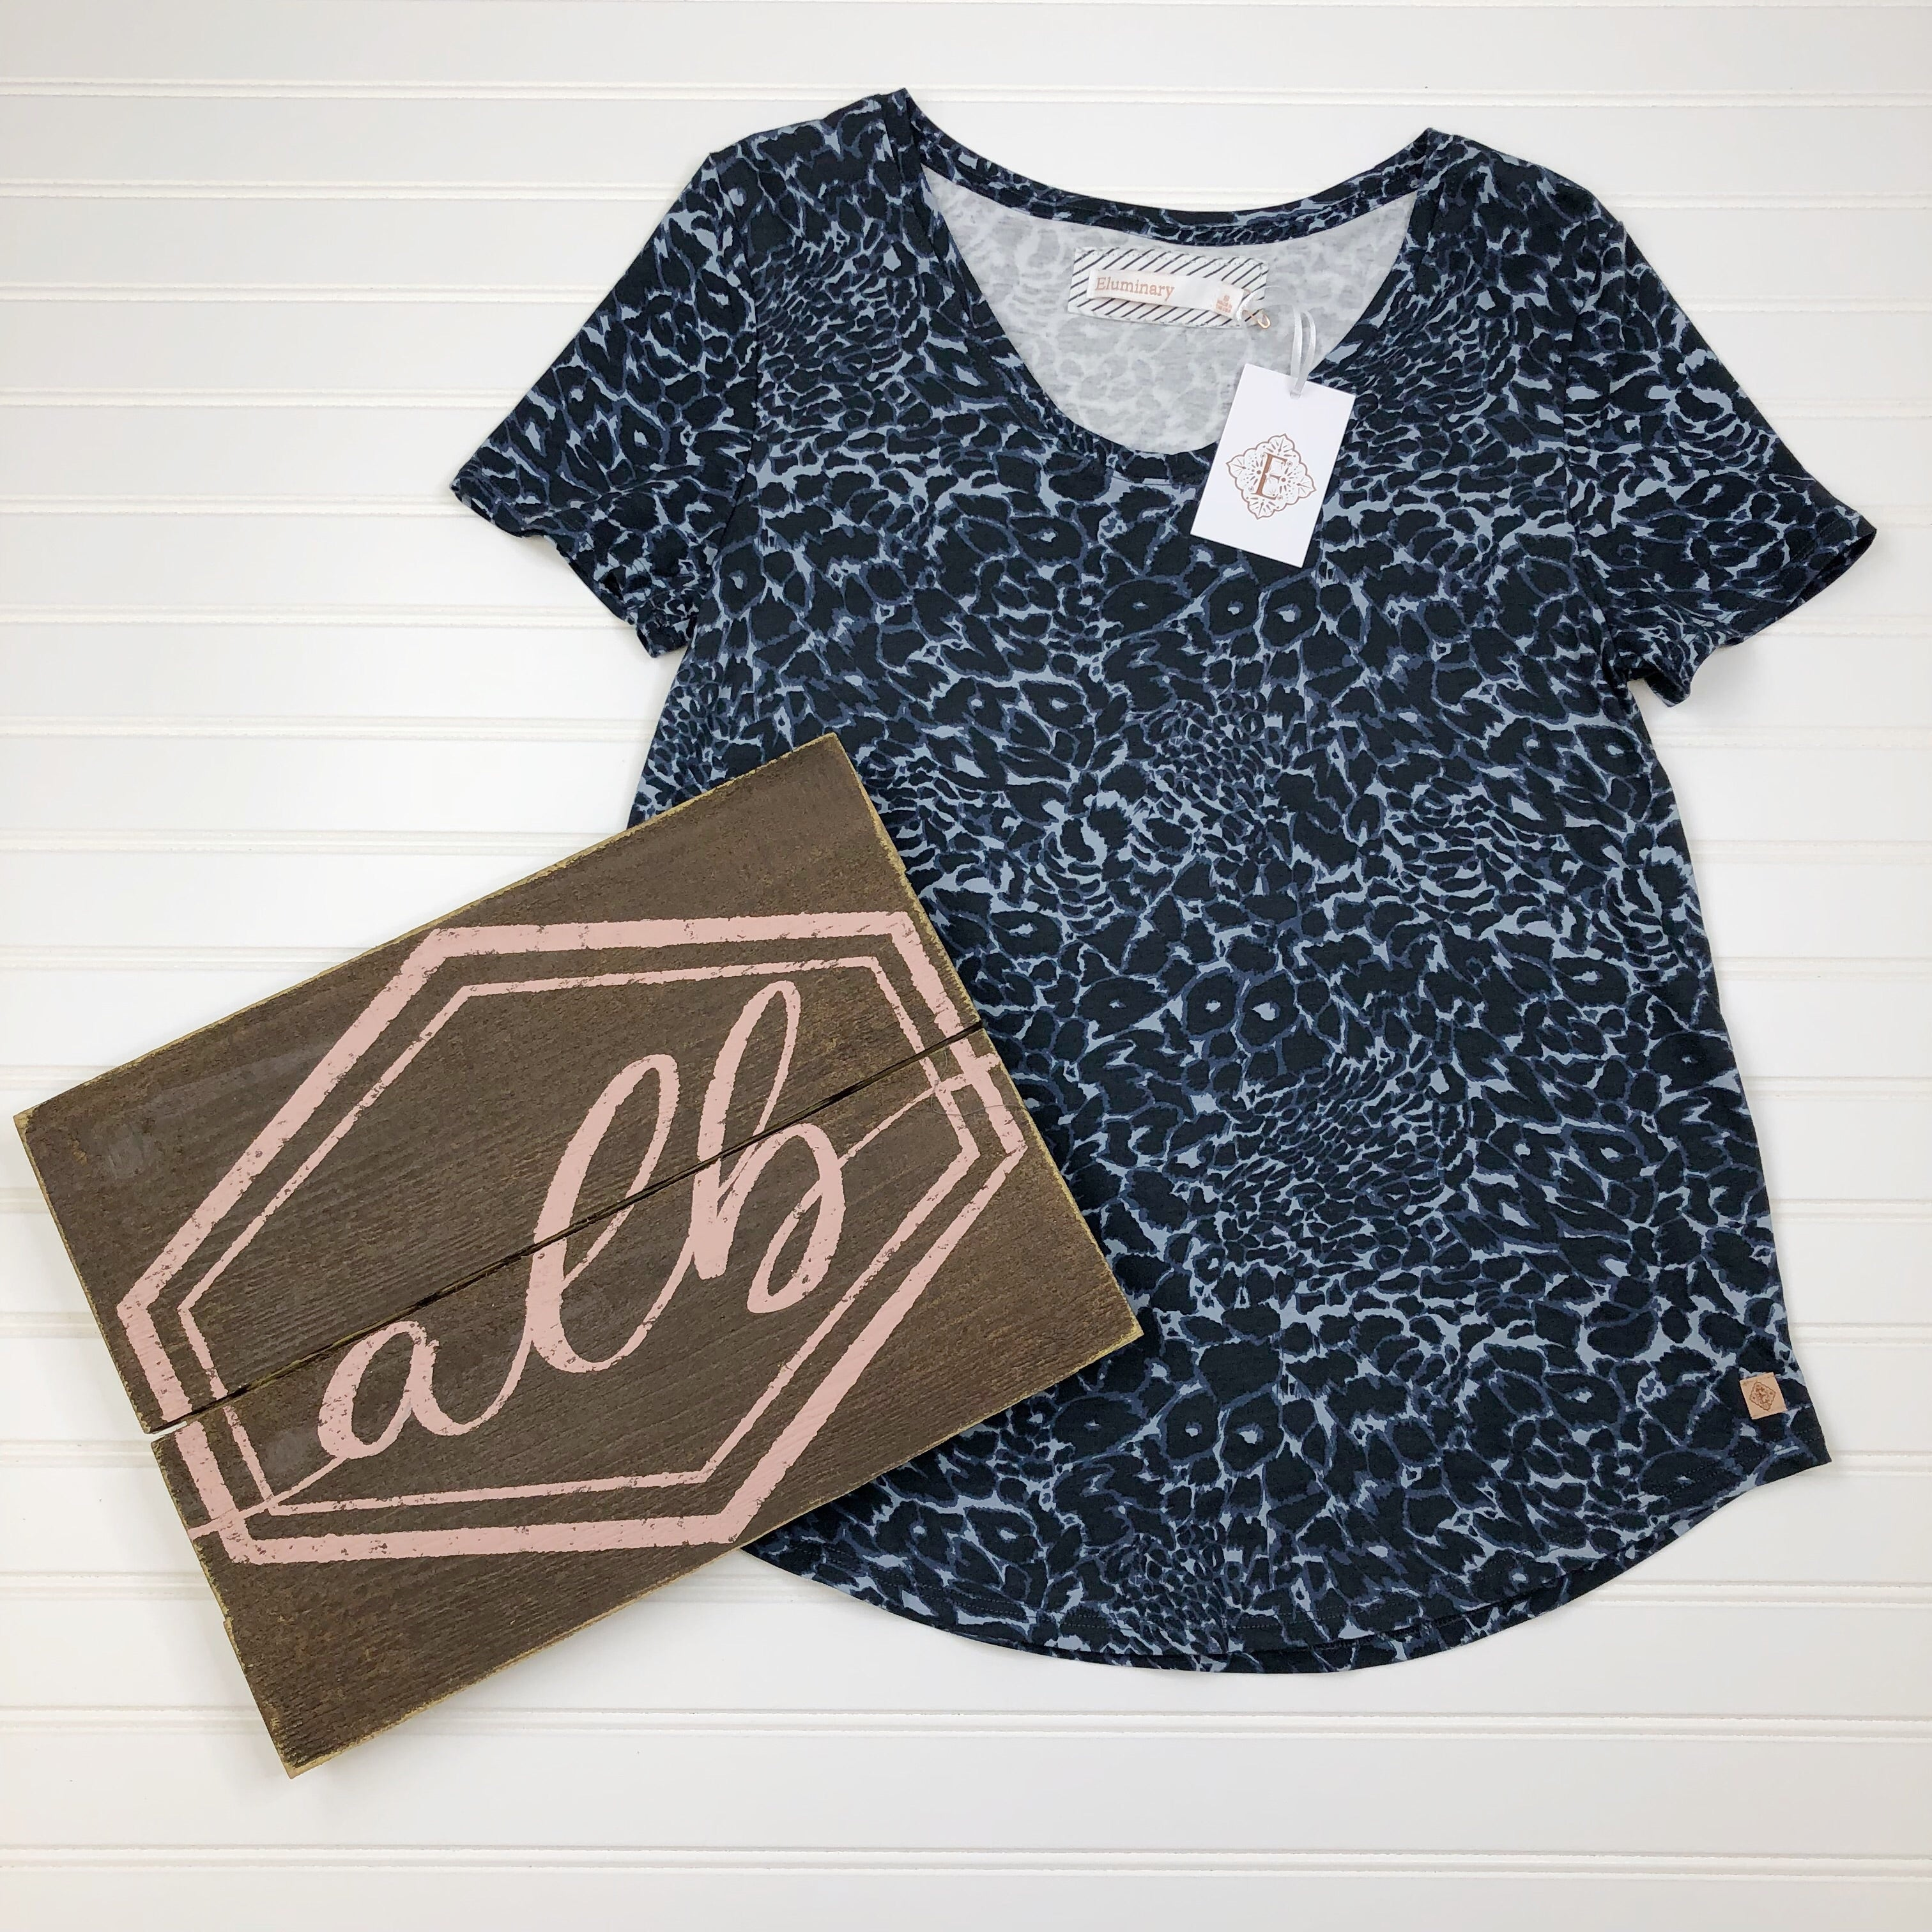 Ava Lane Boutique Women's clothing and accessories